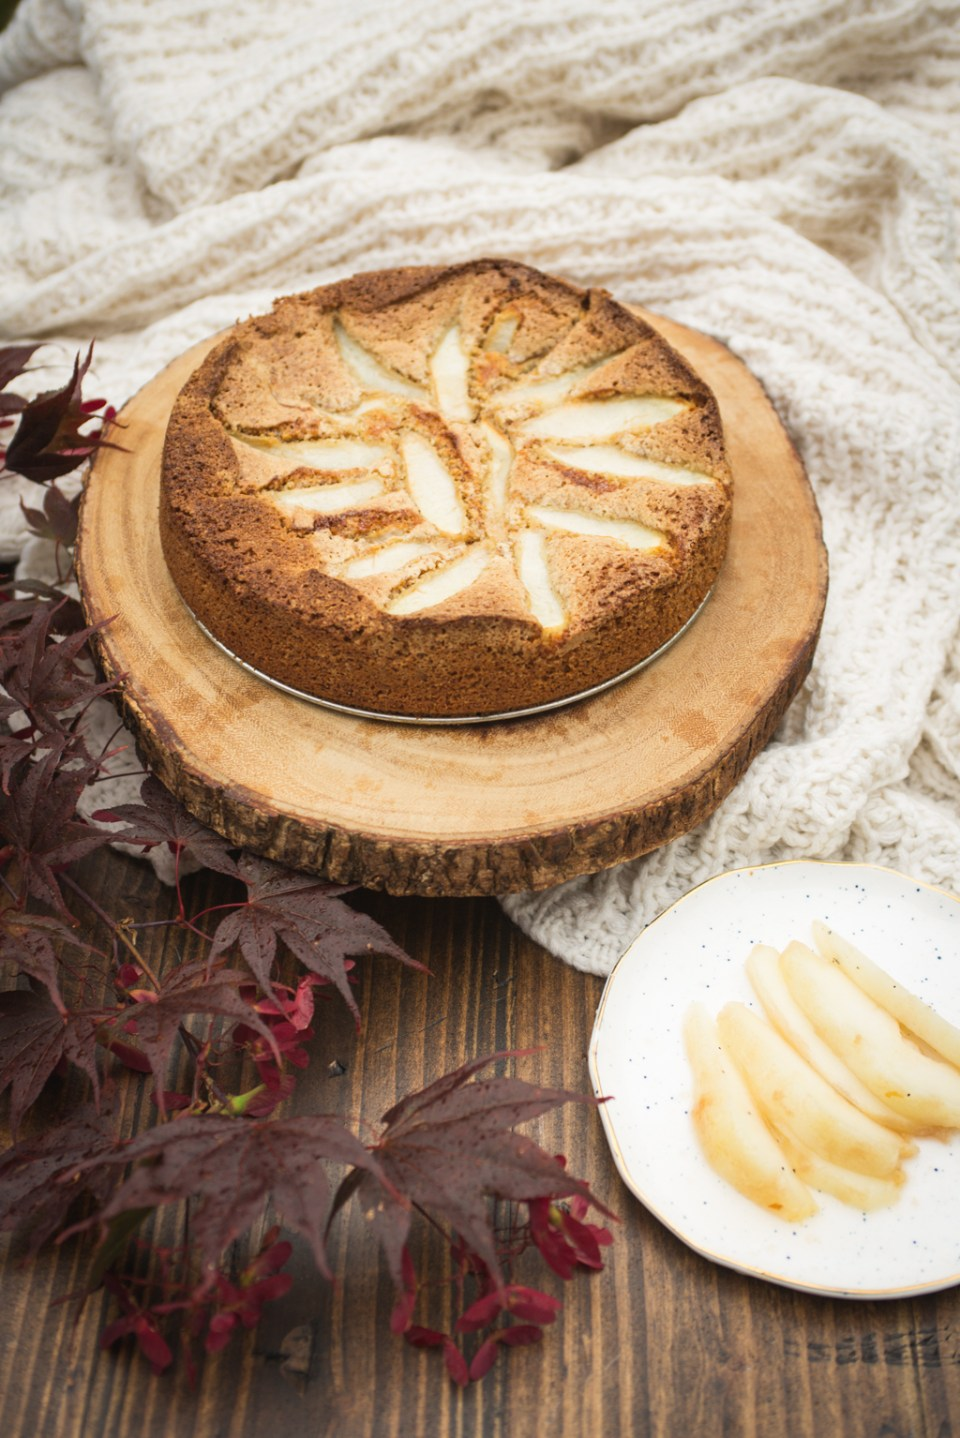 Nordic almond cake with brown butter and pears